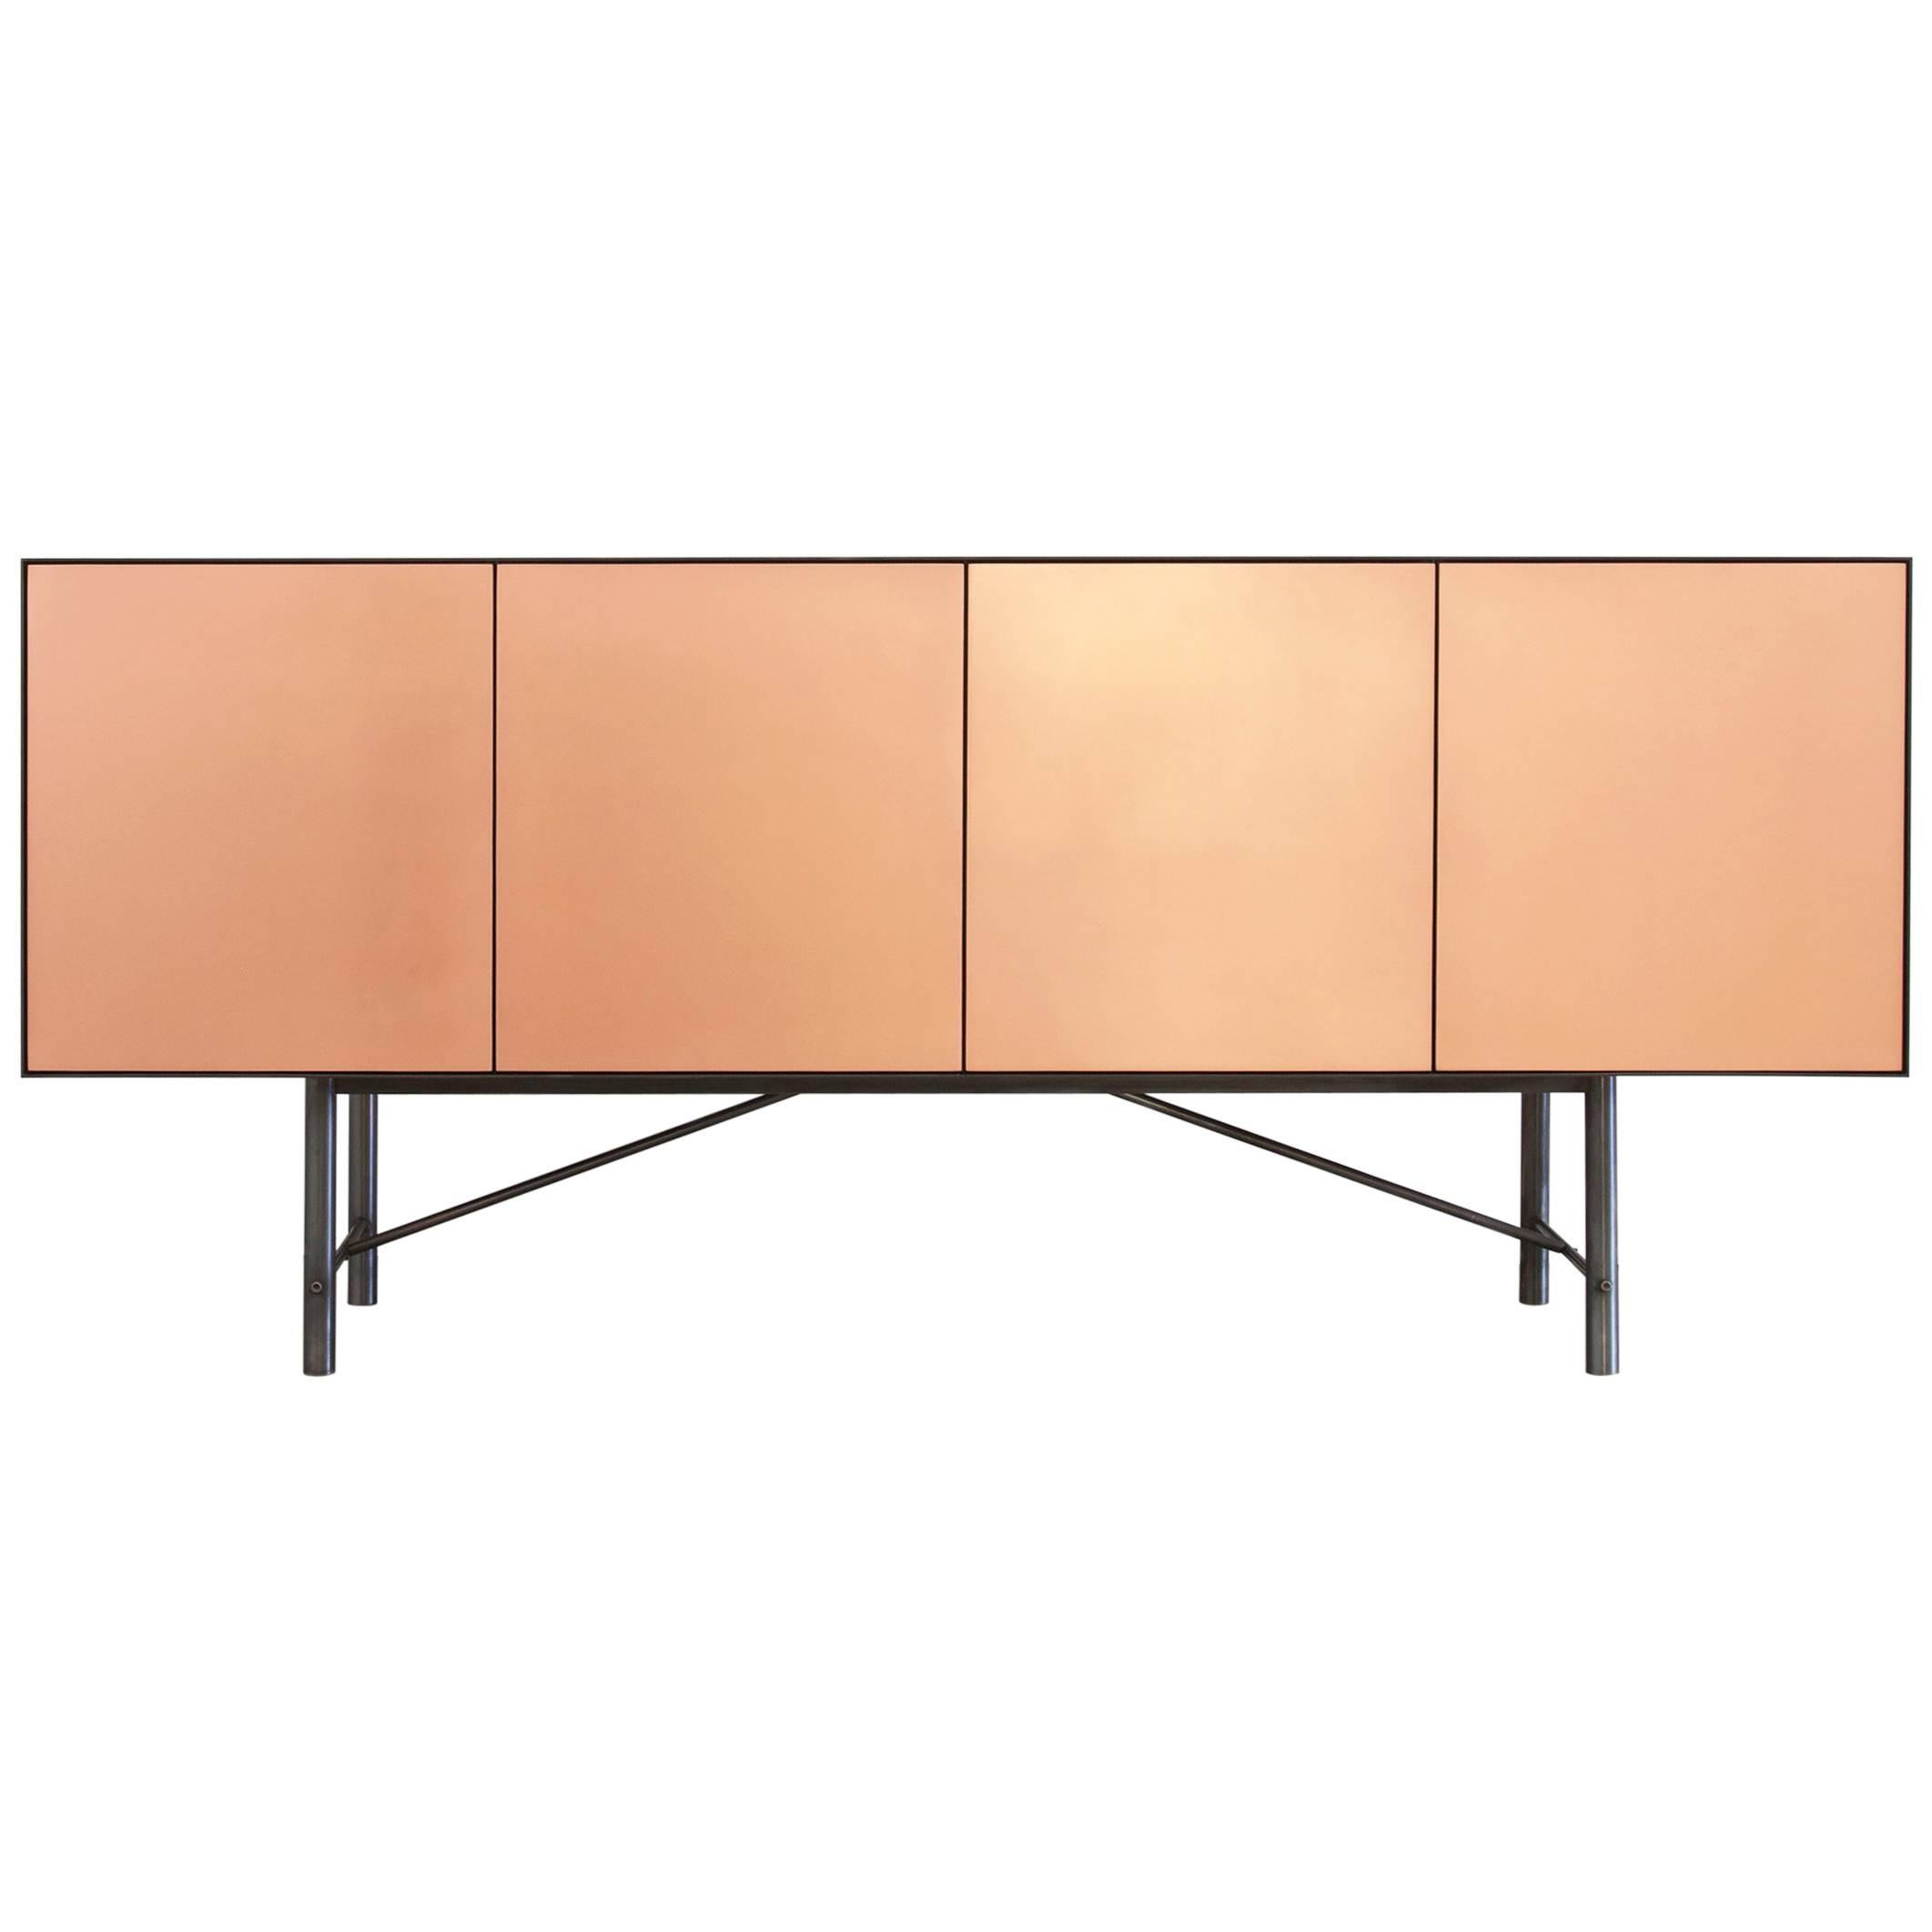 Connect Credenza Cabinet or Sideboard in Customizable Steel Plate Satin Copper